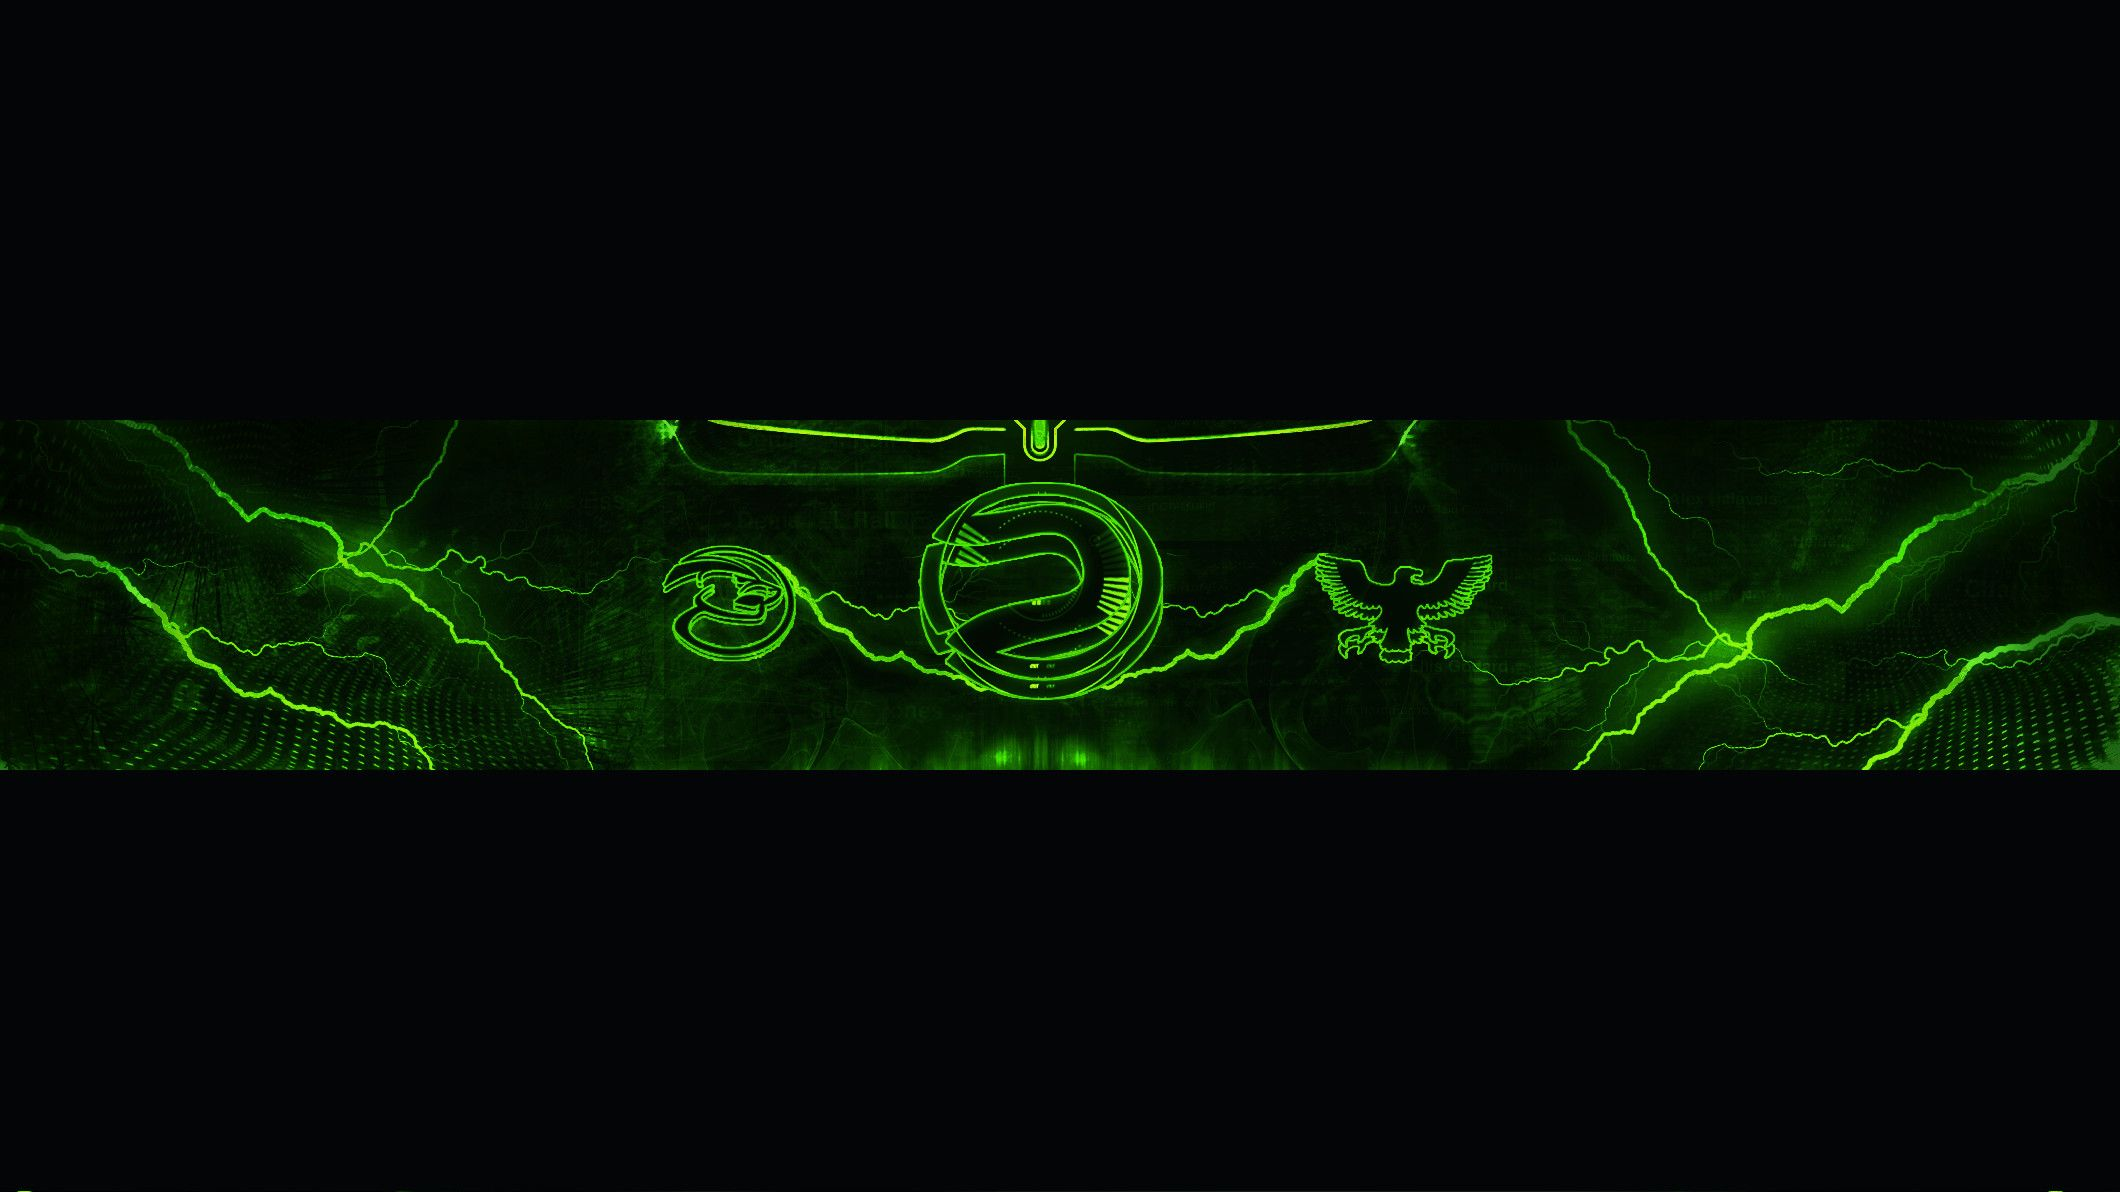 2120x1192 Dare Rising Youtube Banner By Benchiarts Youtube Banners Youtube Banner Backgrounds Youtube Banner Template